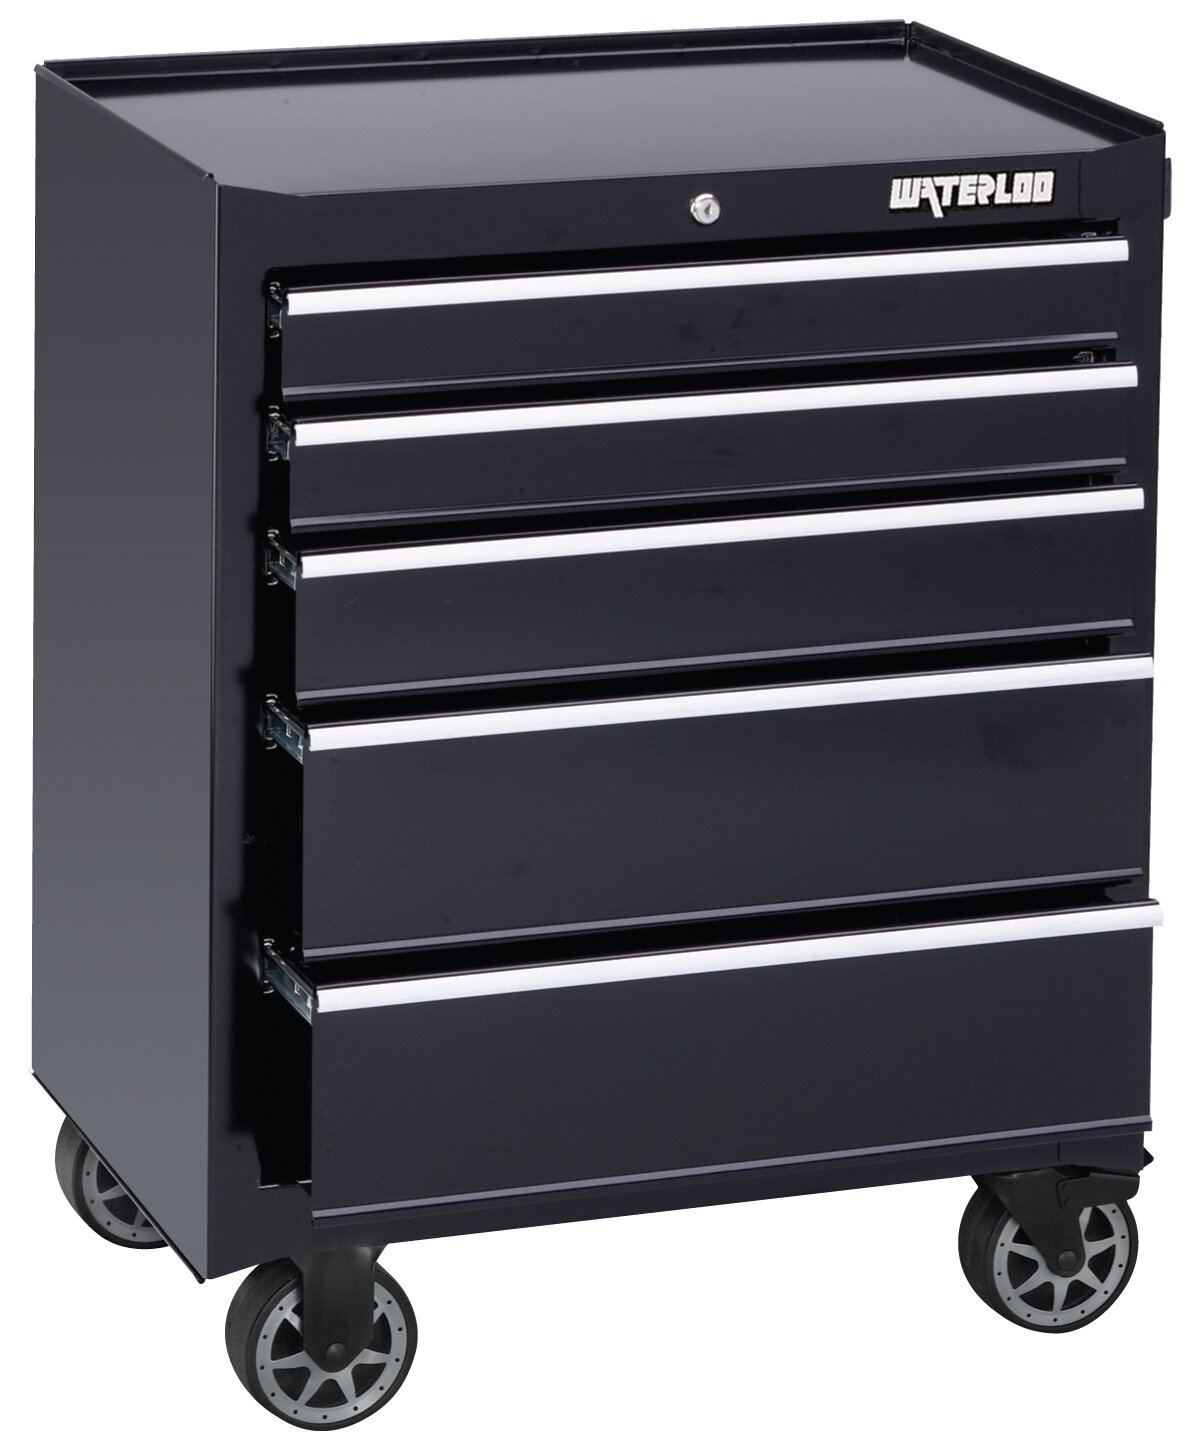 powder cabinet rust chest combo coat finish combos p and in paint husky black tool drawer resistant waterloo